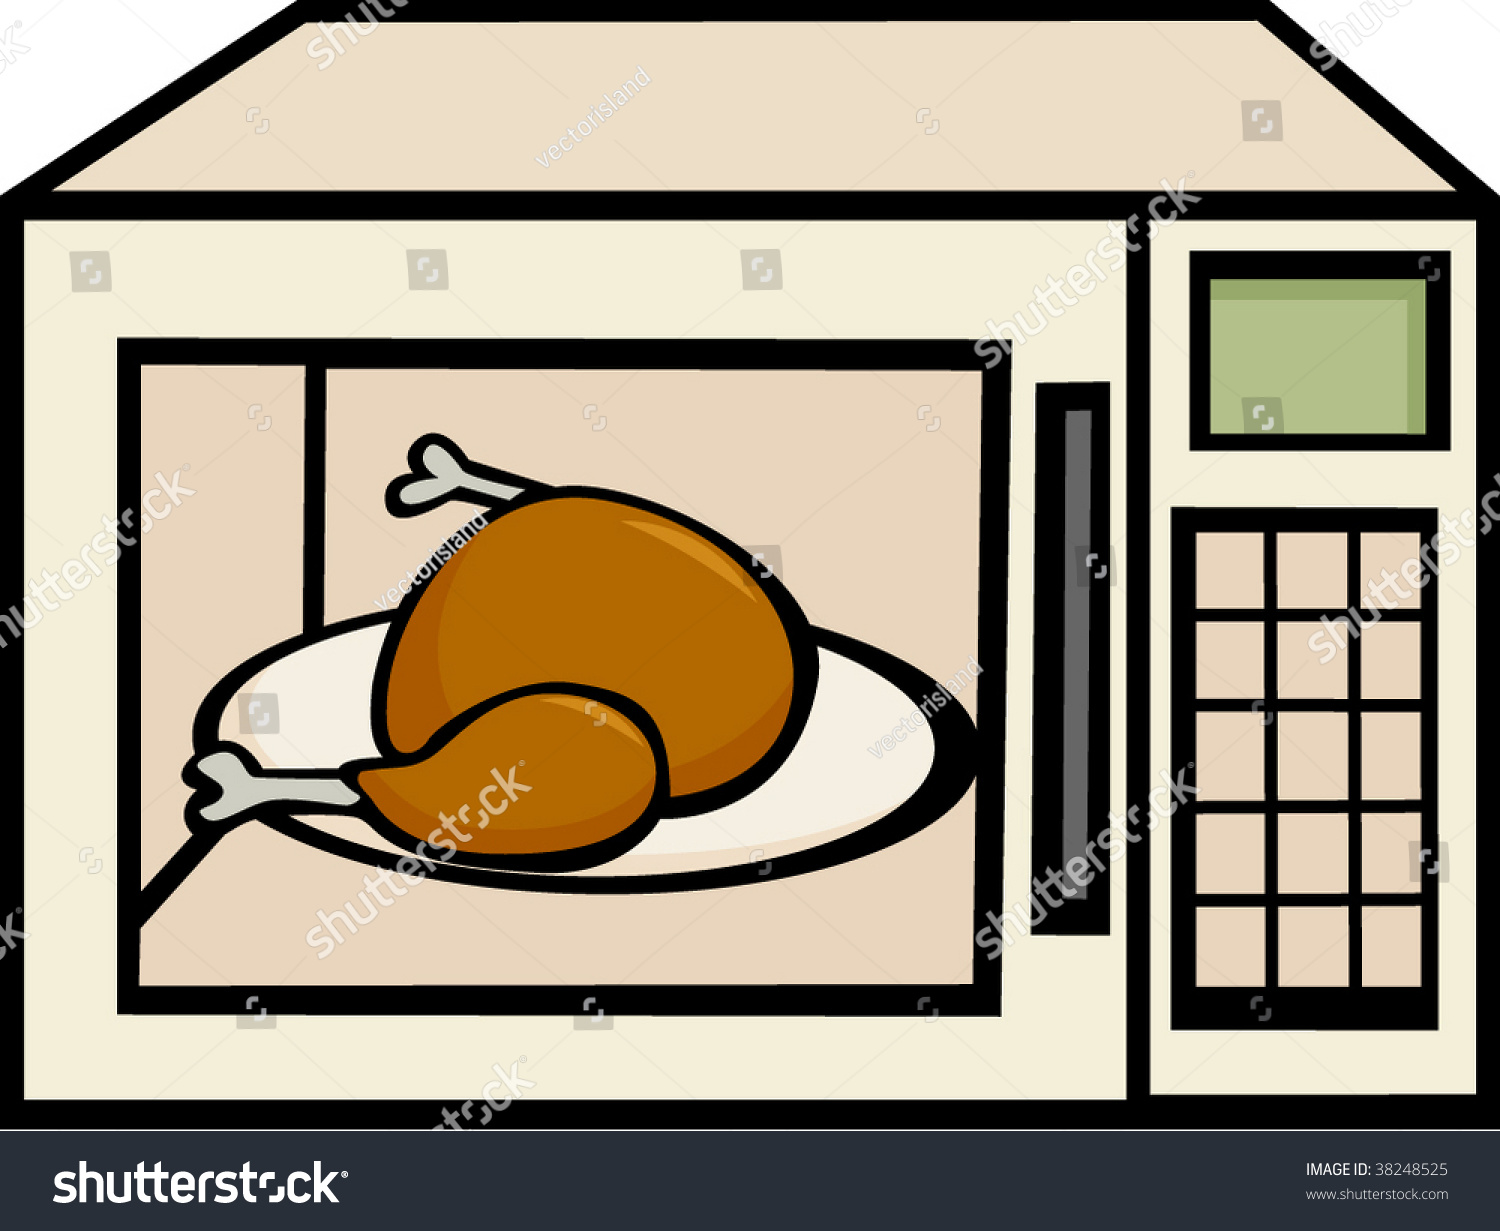 Microwave Oven Clip Art ~ Chicken turkey microwave oven stock vector